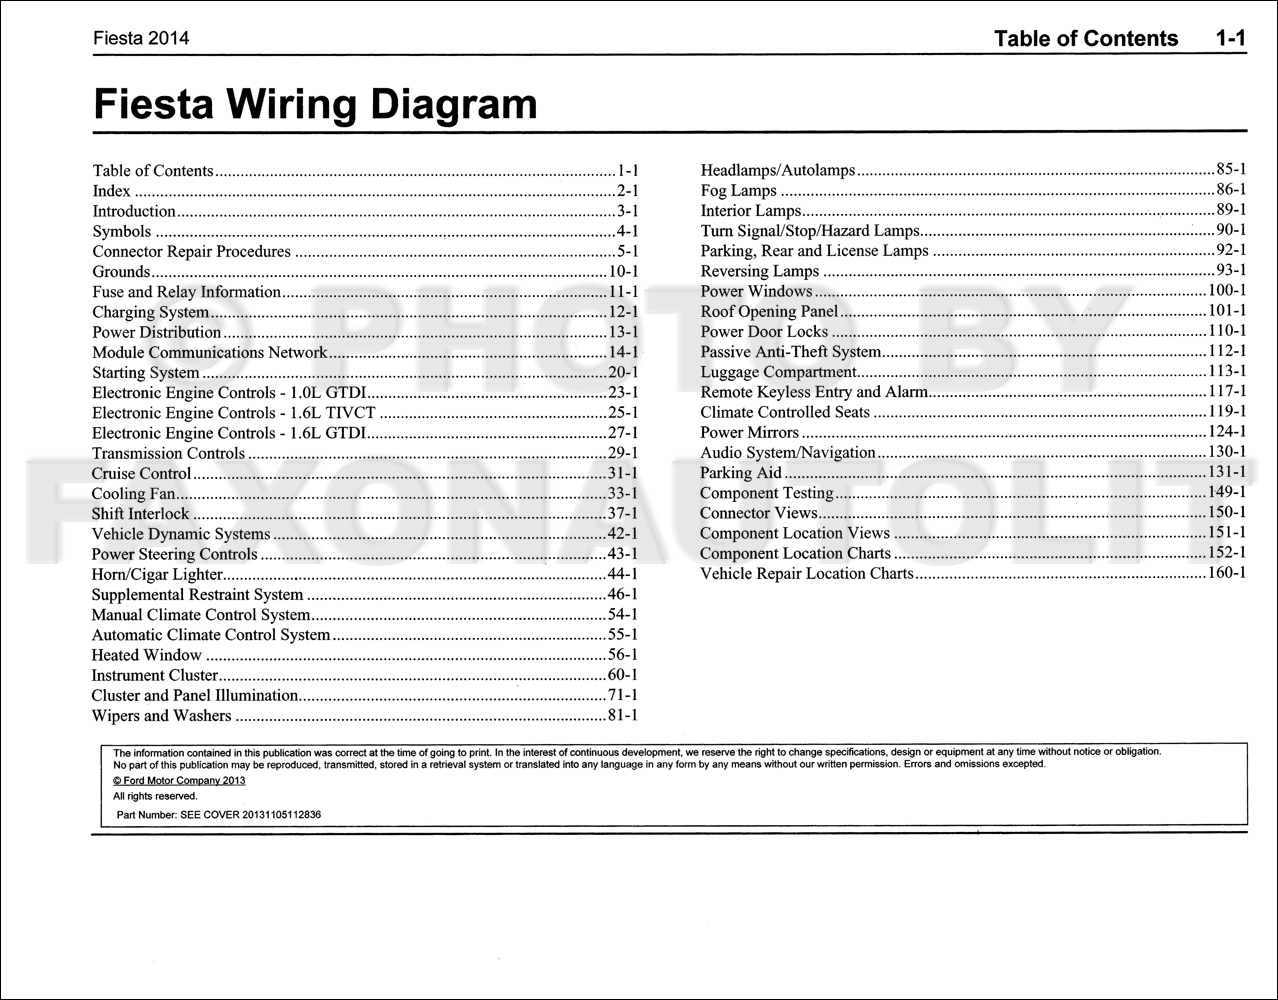 1997 Ford Festiva Wiring Diagram Manual Of 93 2014 Fiesta Original Rh Faxonautoliterature Com